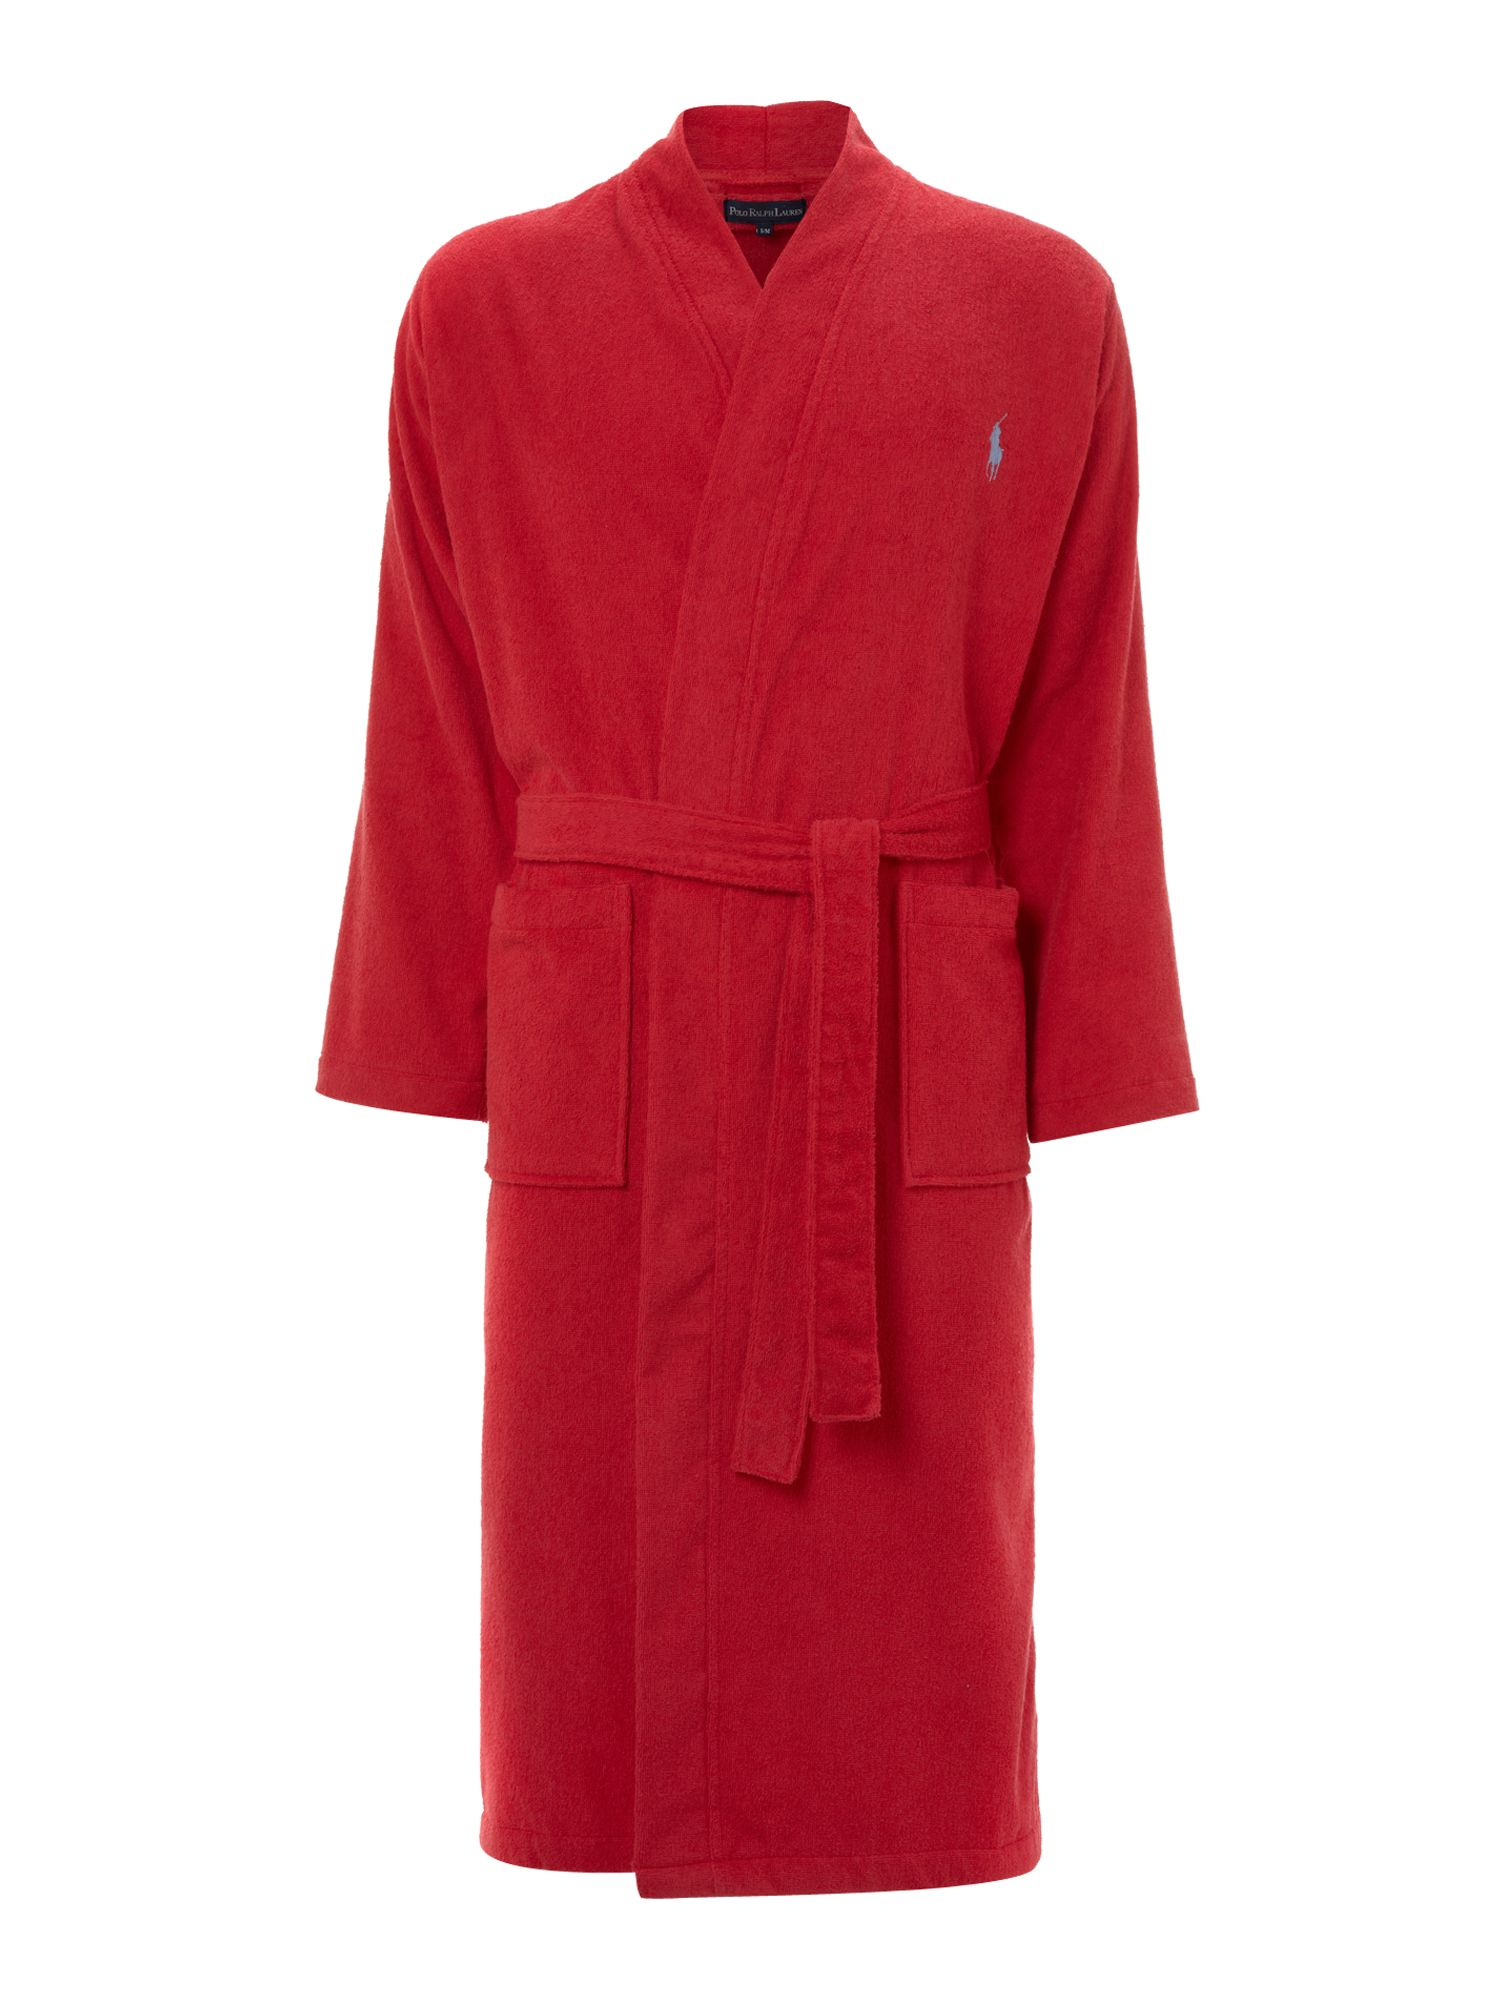 polo ralph lauren terry night robe in red for men lyst. Black Bedroom Furniture Sets. Home Design Ideas